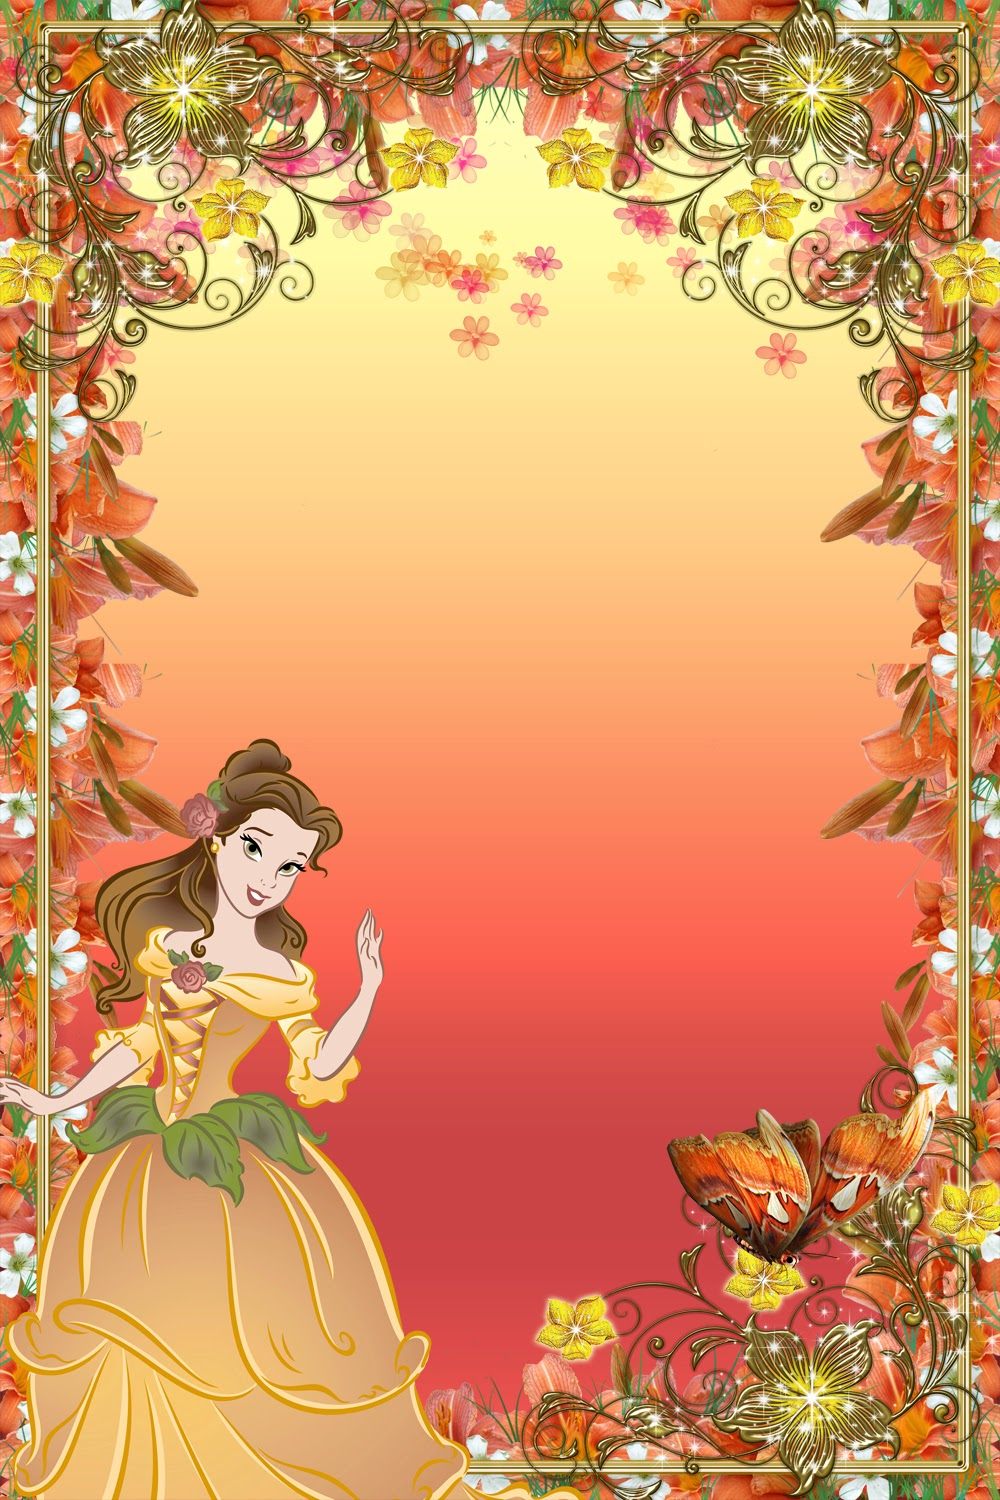 Disney belle frame clipart png transparent download Frames with Beauties - Disney Princess Belle | Flowers of Indus Valley png transparent download